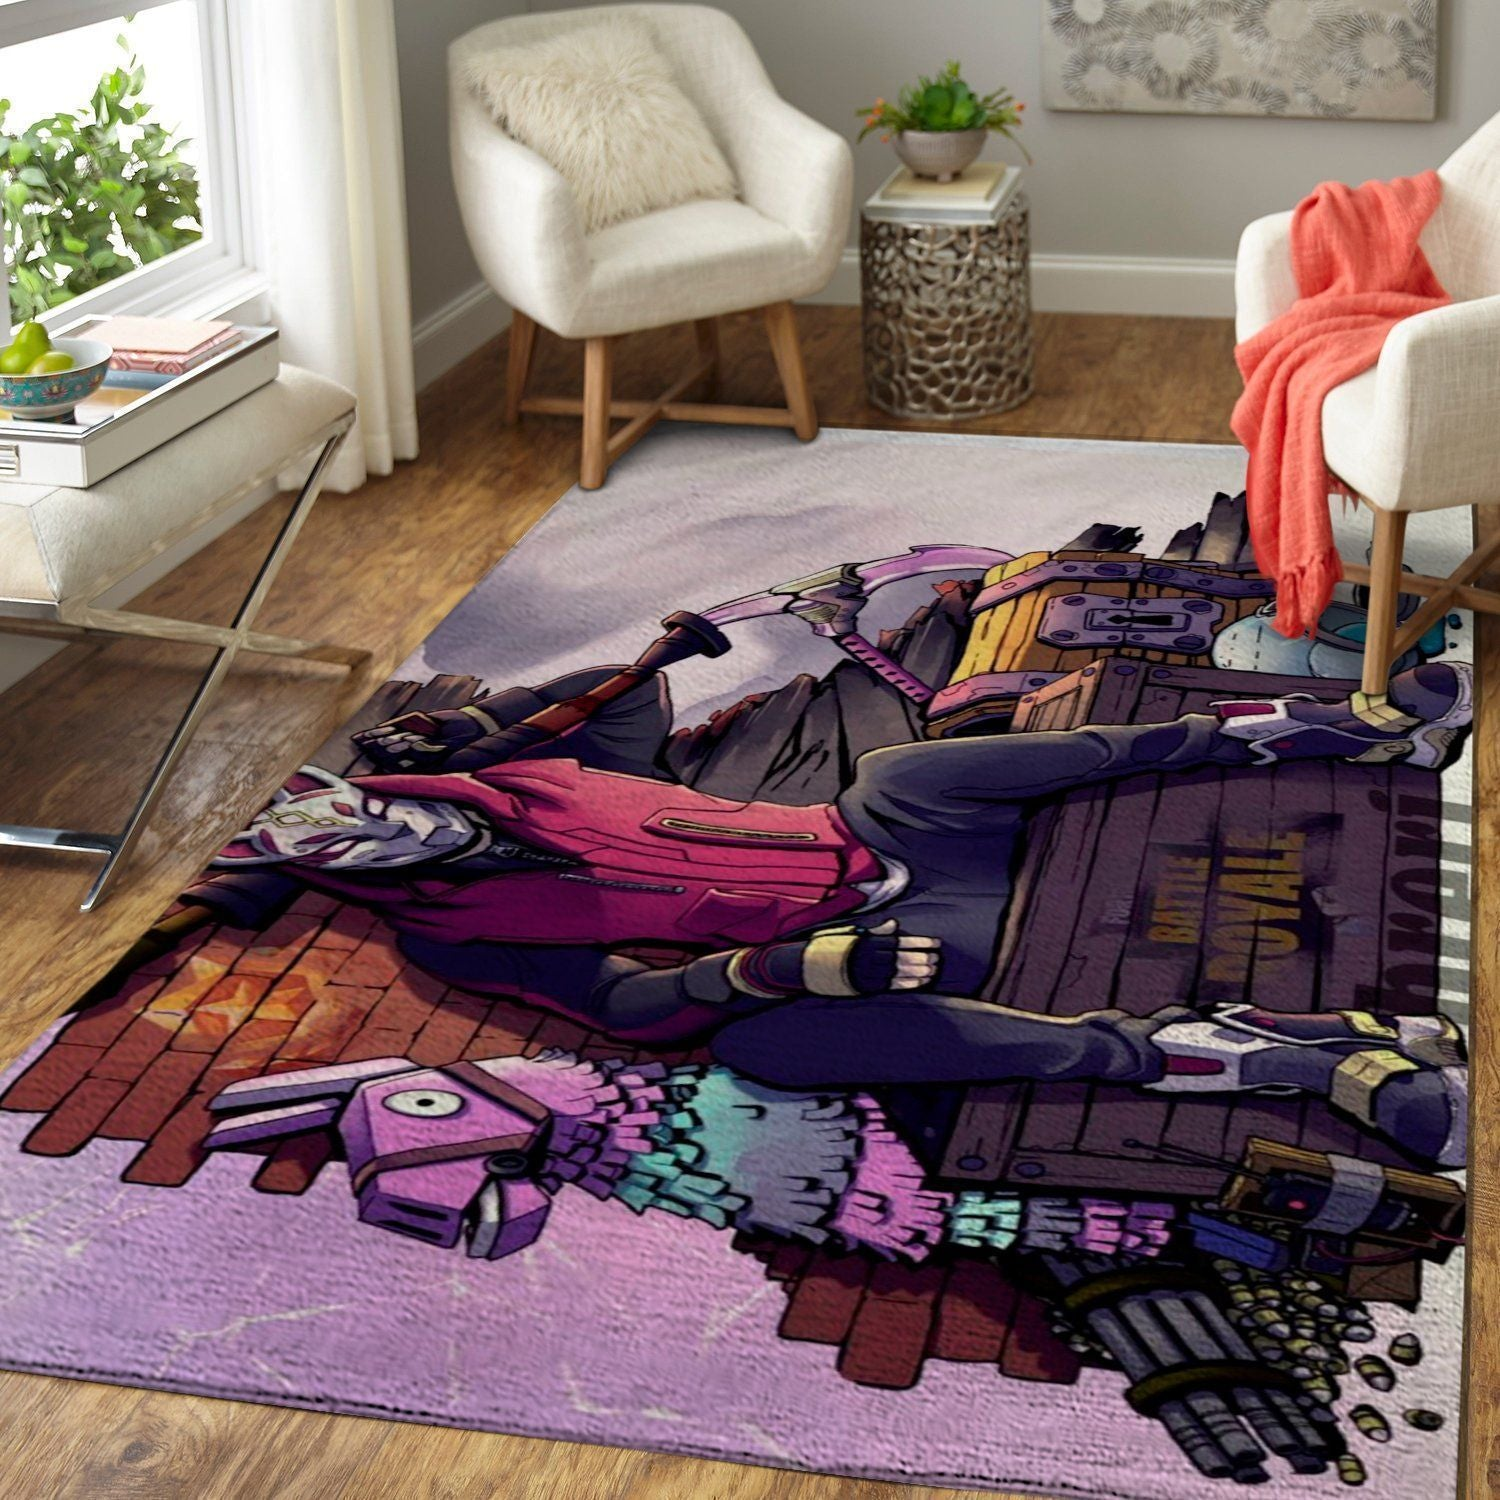 Fortnite Area Rug Video Game Carpet, Gamer Living Room Rugs, Floor Decor 1910183